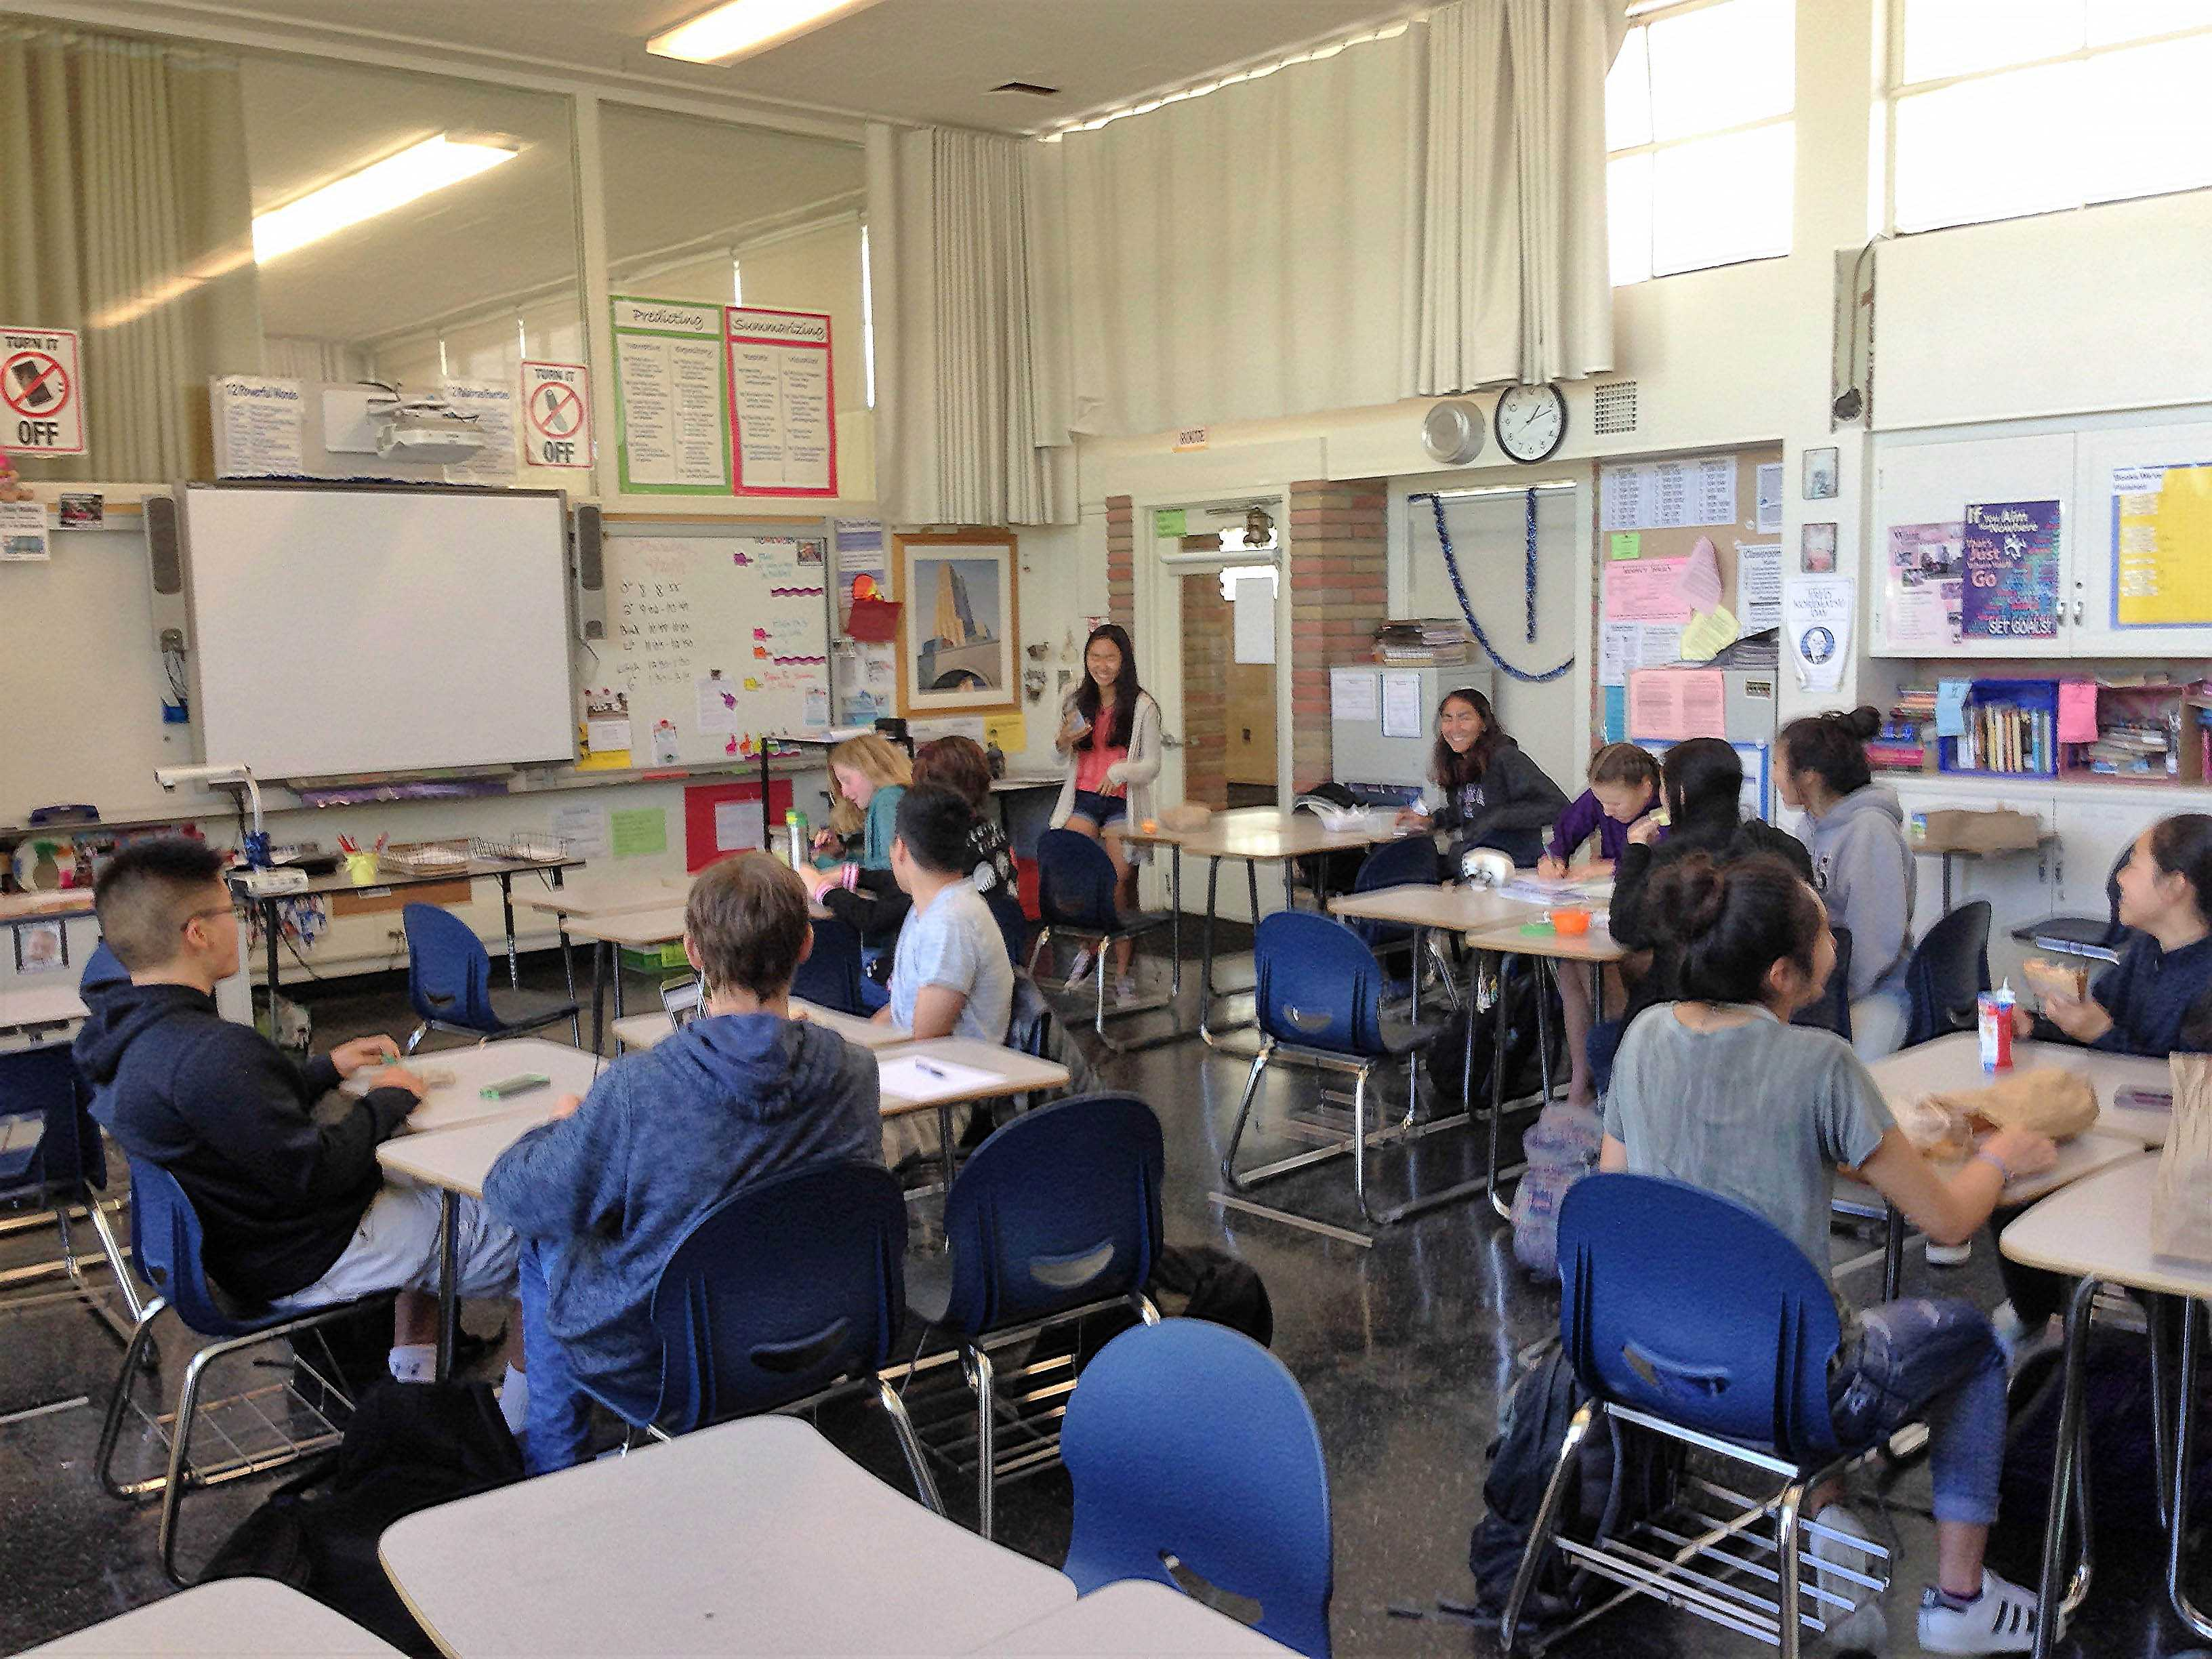 Cindy Ji leads a discussion, guided by the central question,